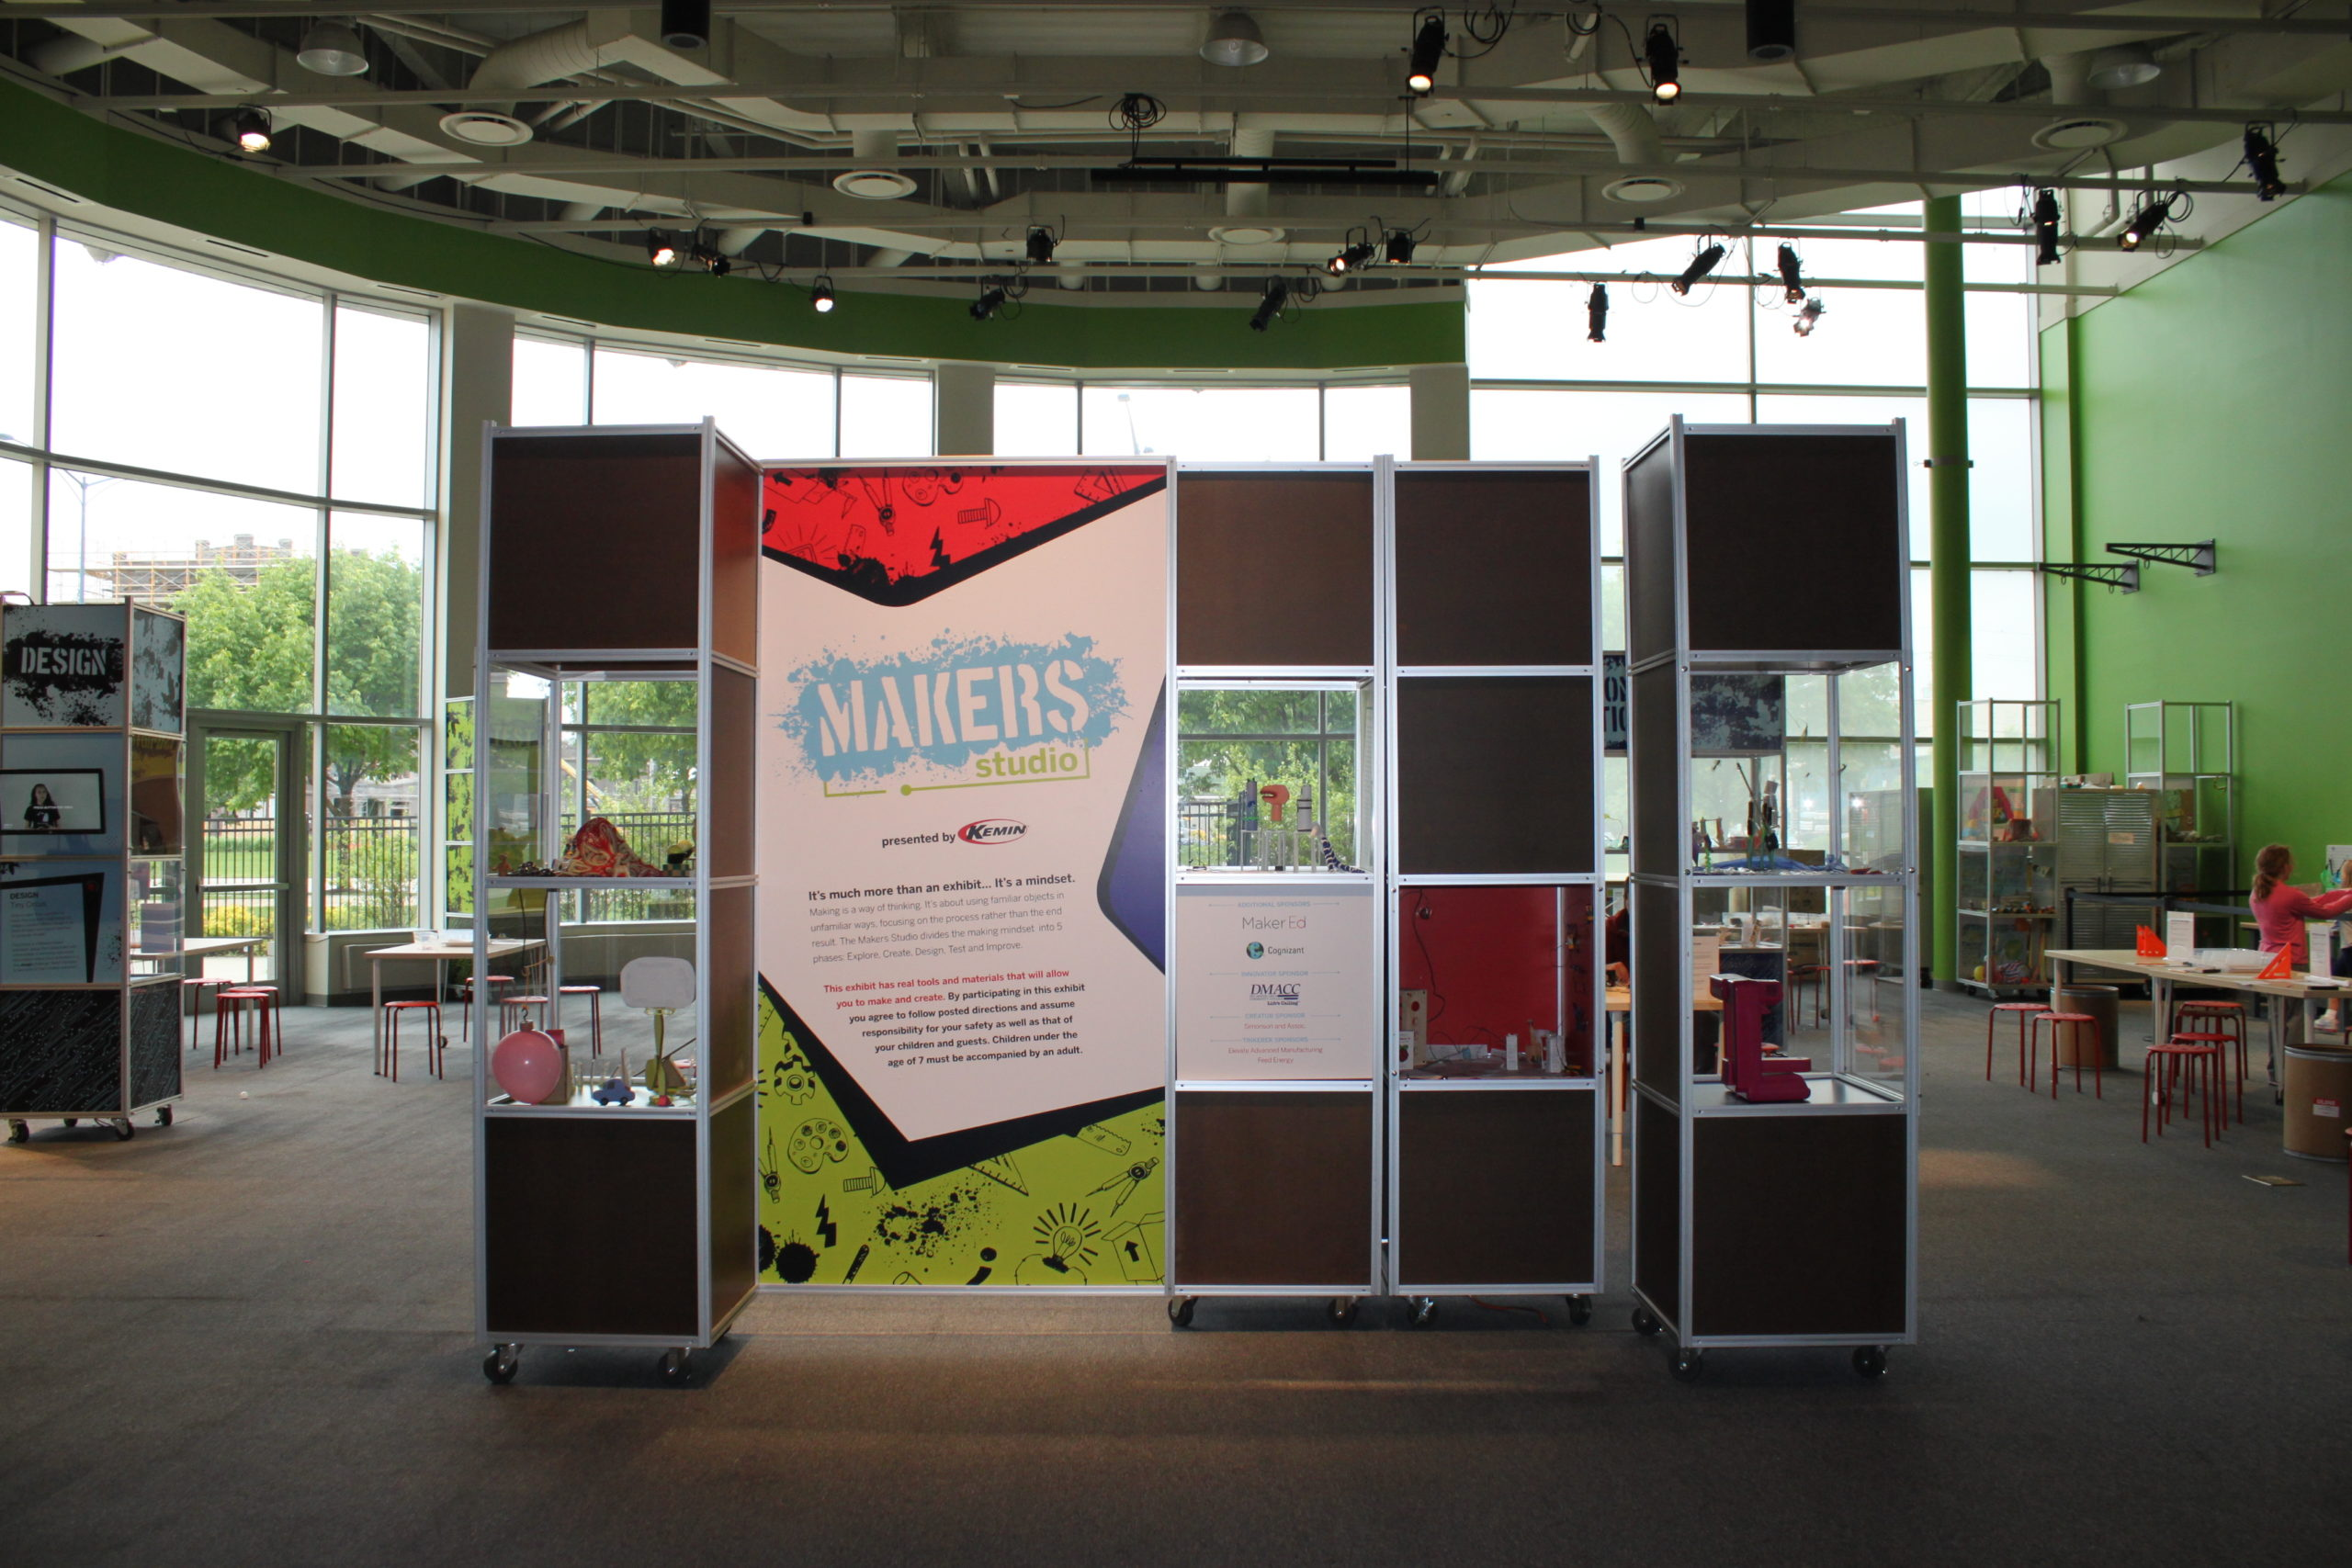 Makers Studio at Science Center of Iowa